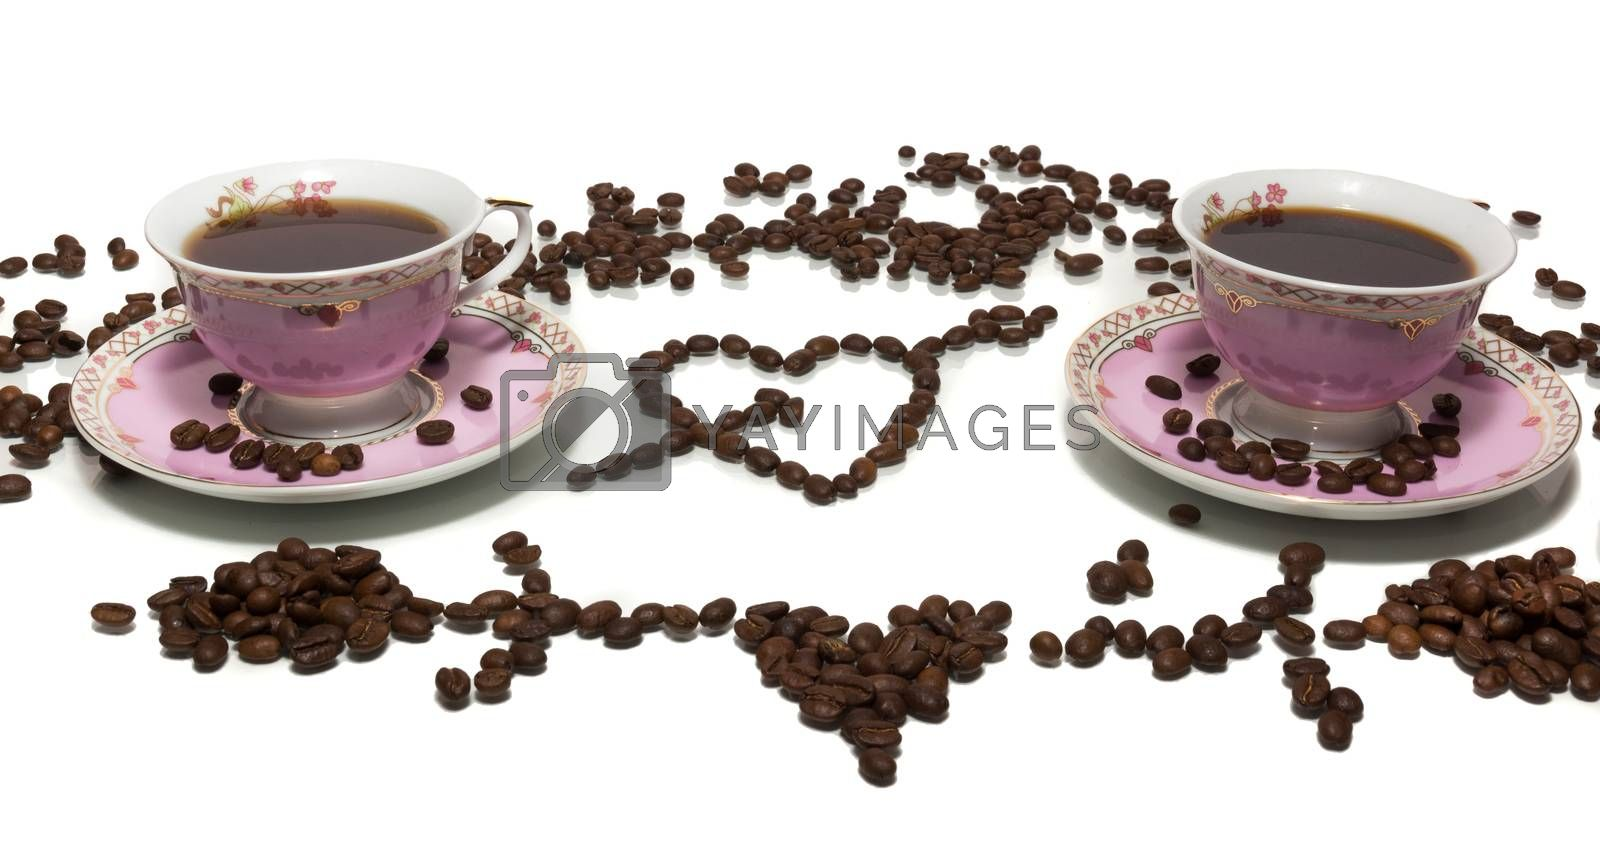 The photograph shows a coffee on a white background